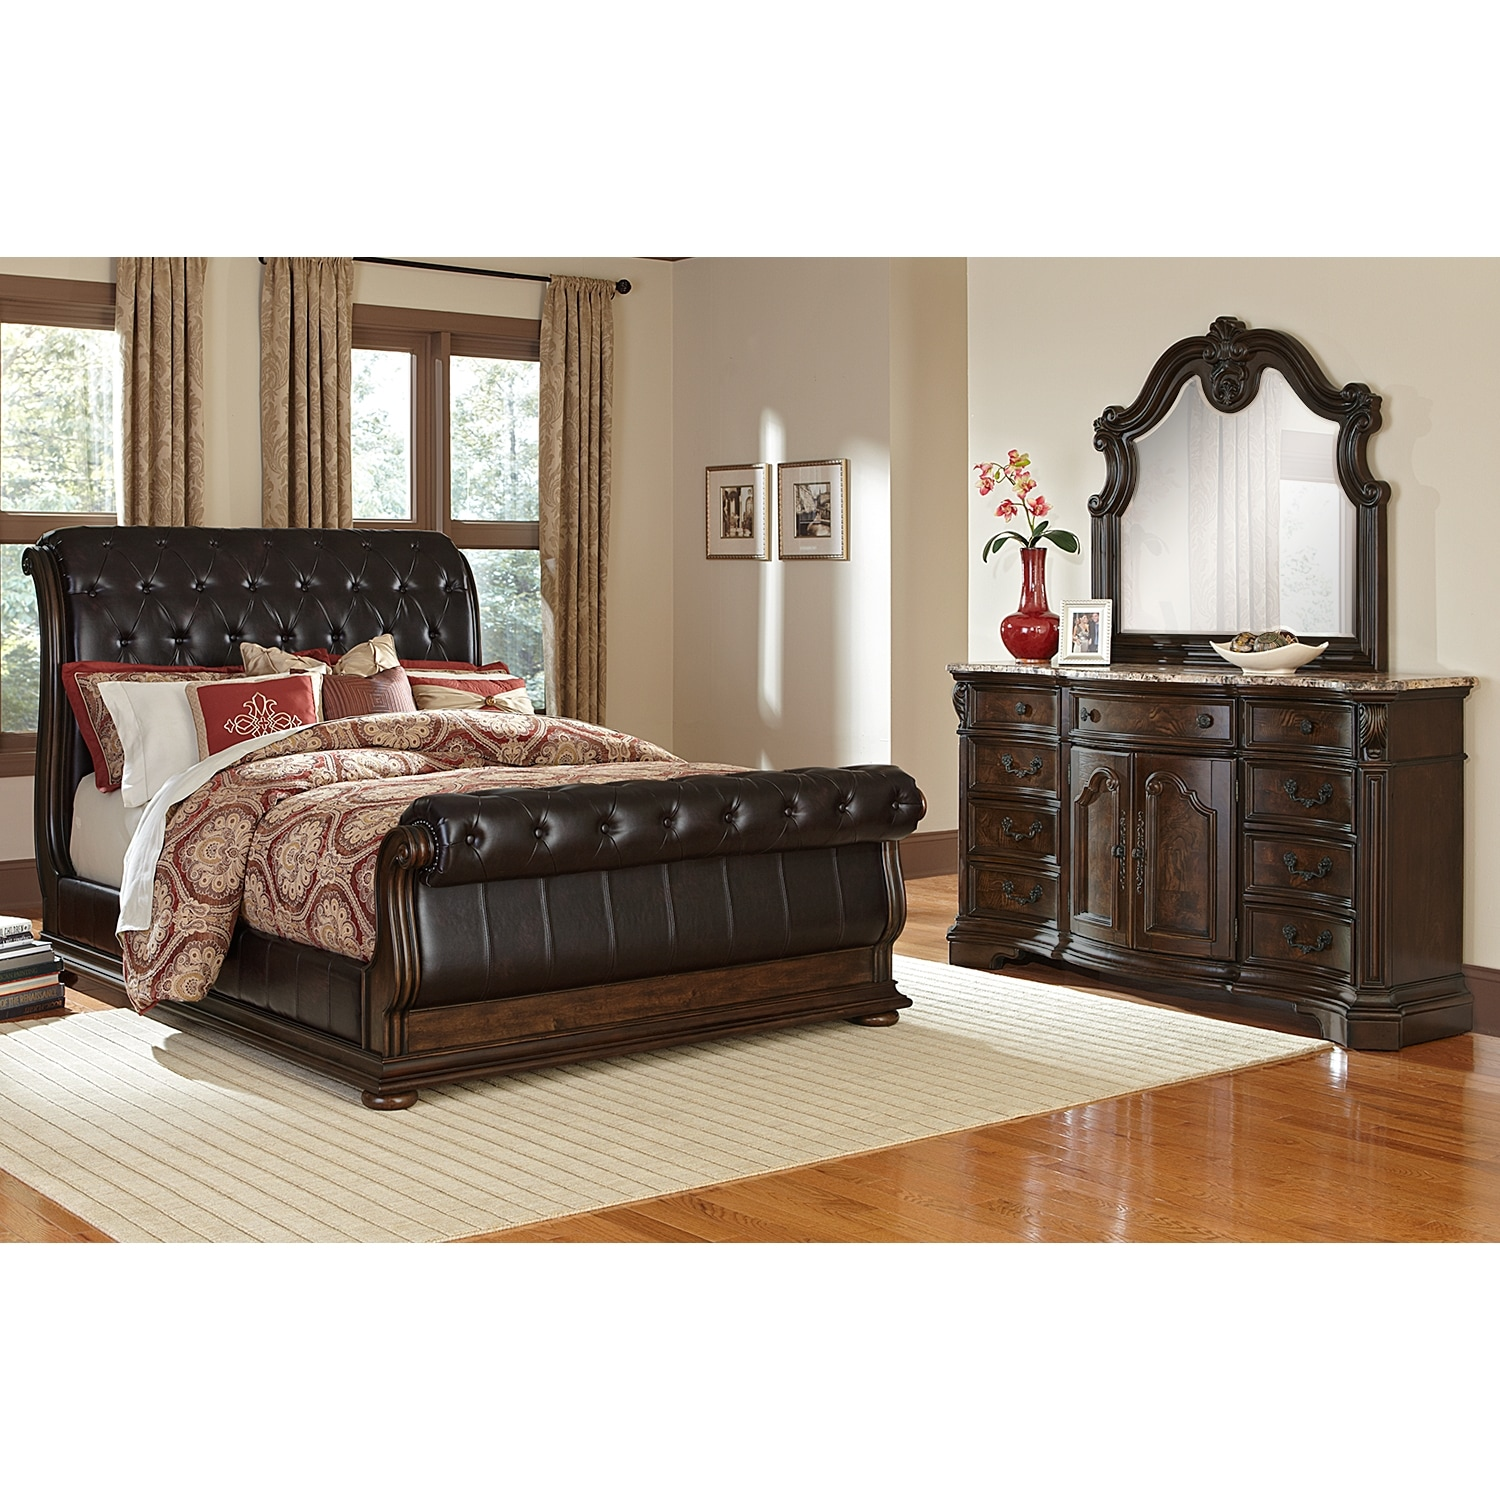 value city bedroom sets monticello 5 sleigh bedroom set pecan 17687